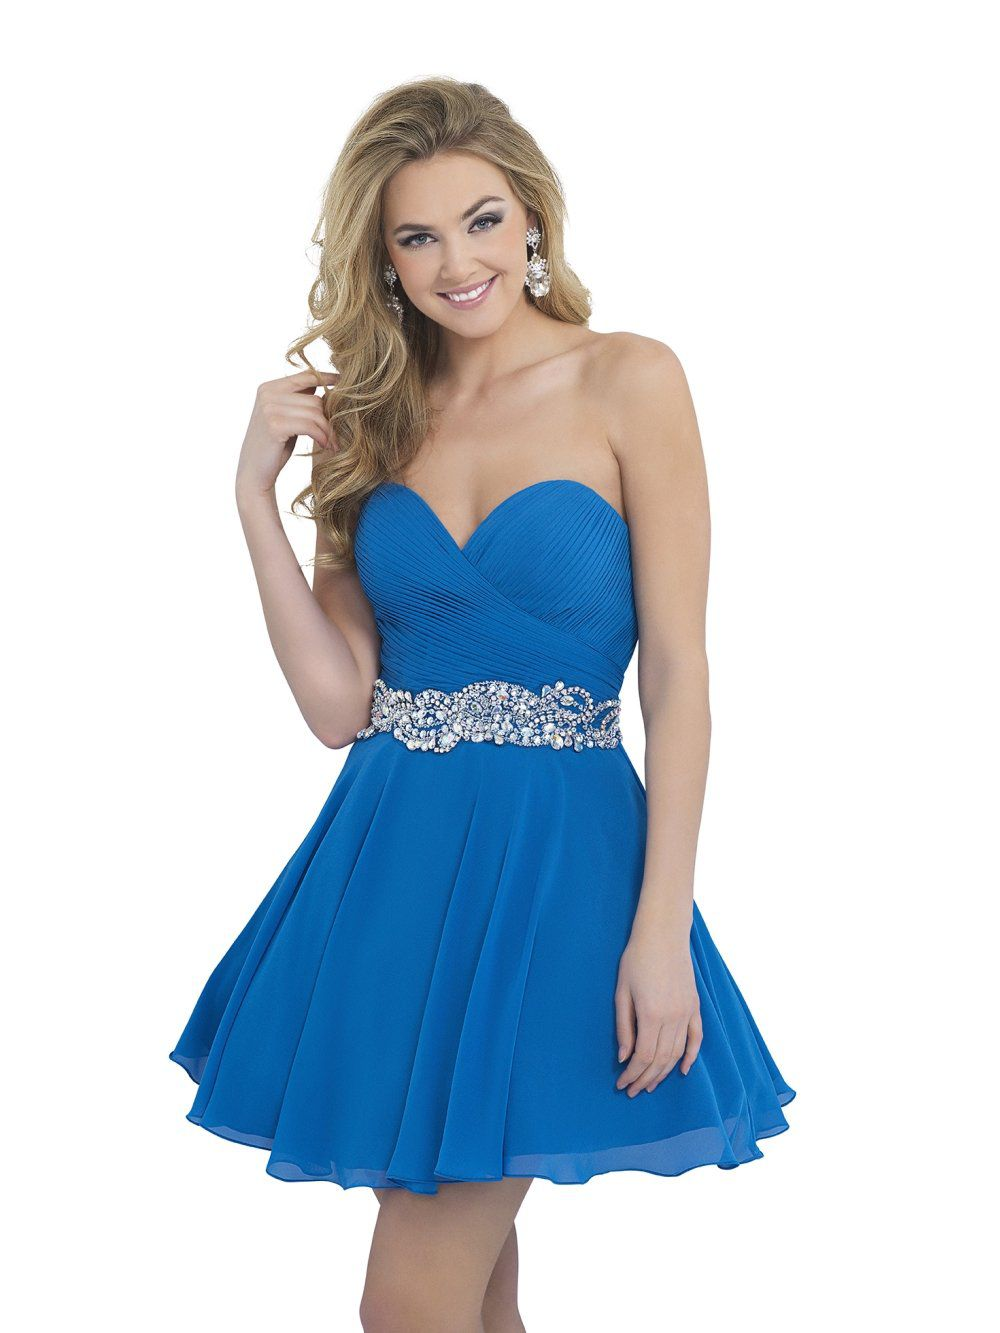 Style 10059 Blush Prom  Blue Size 12 Jewelled Plus Size Backless Flare A-line Dress on Queenly